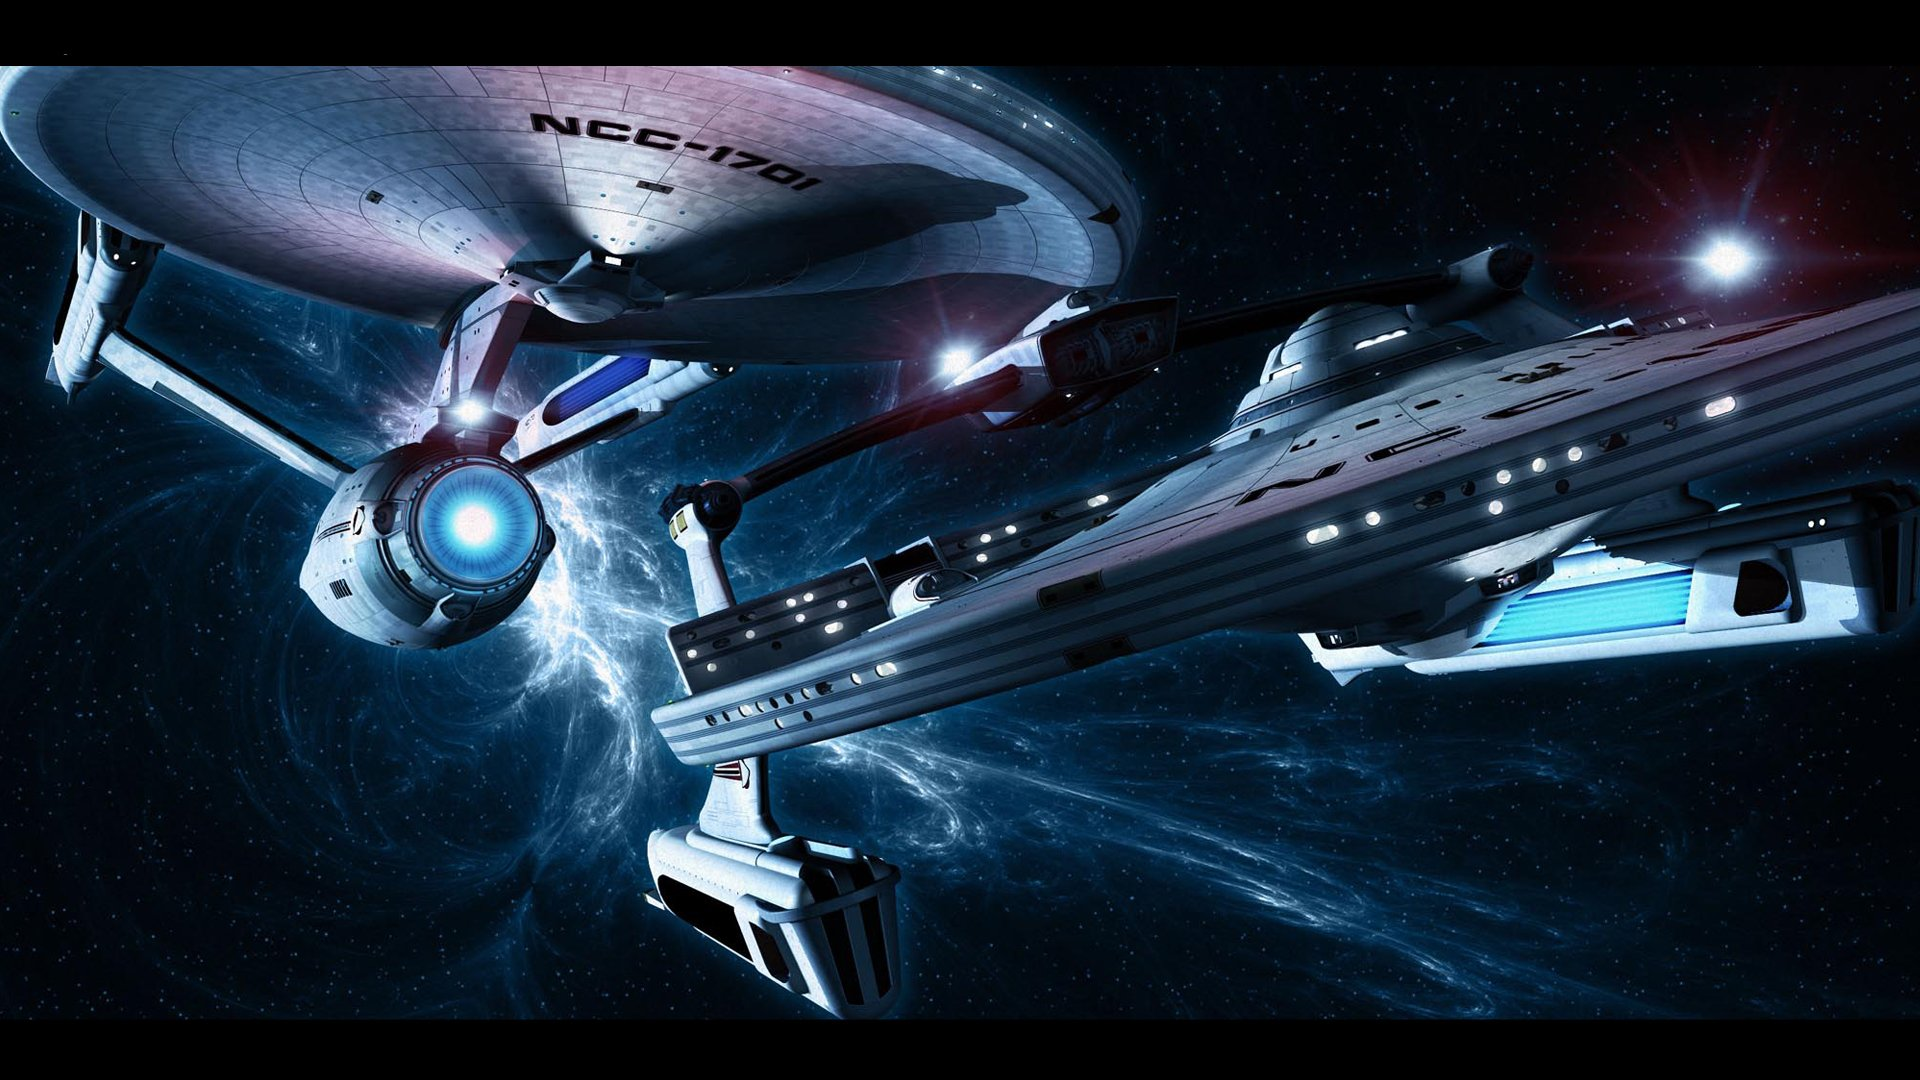 Favori 33 Enterprise (Star Trek) HD Wallpapers | Background Images  AH23